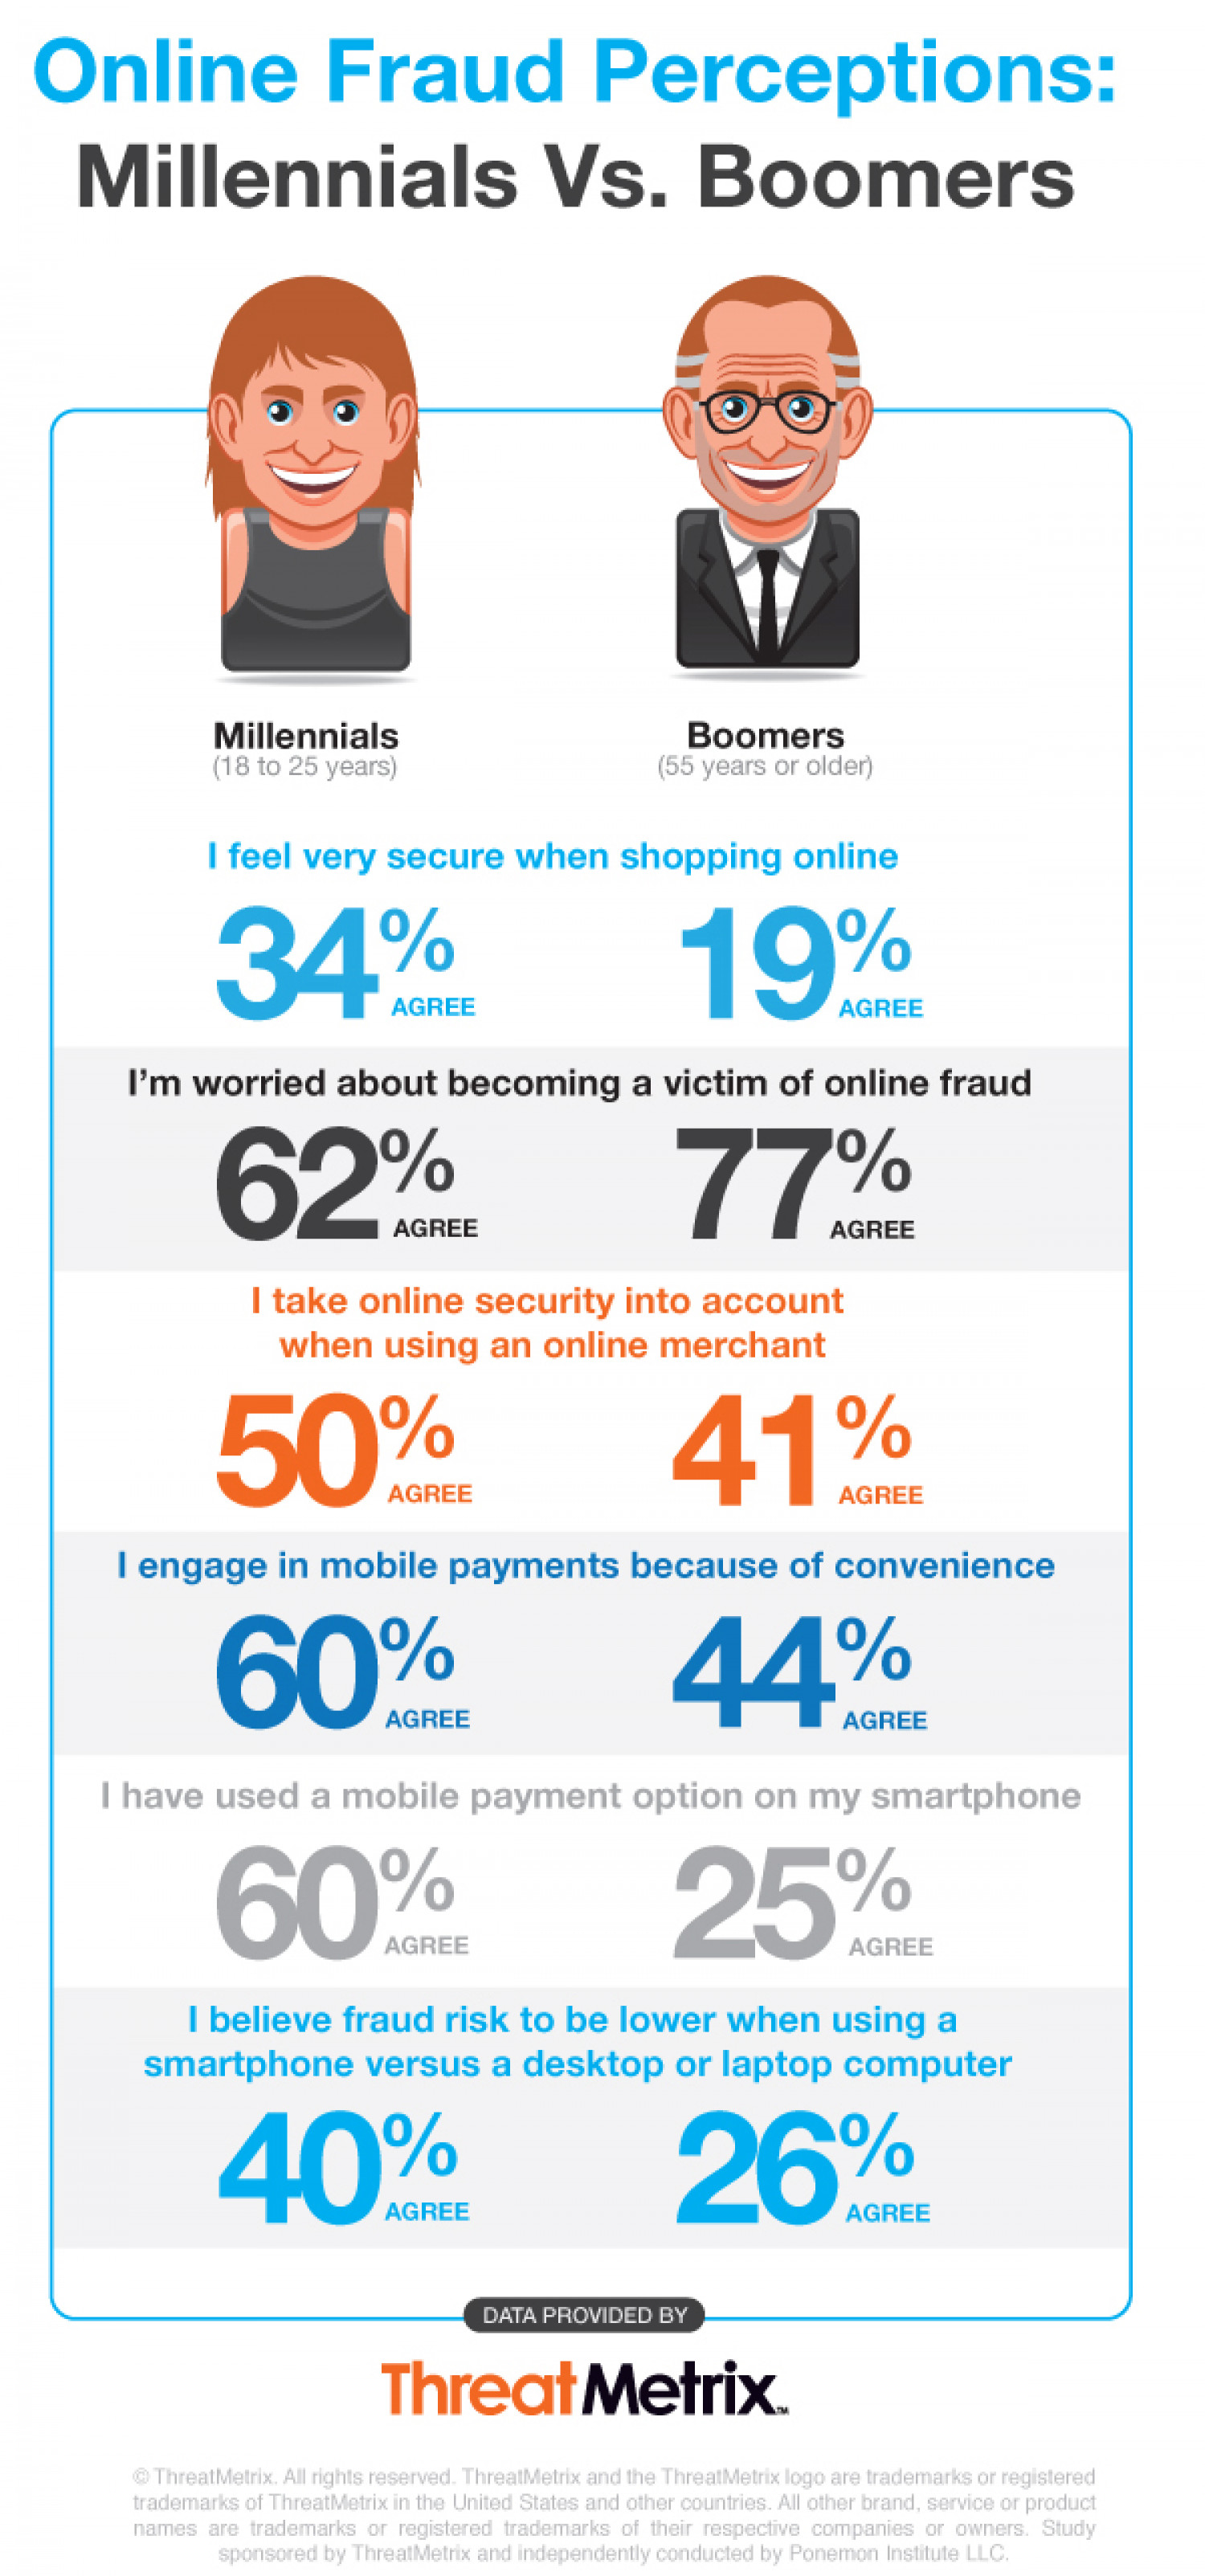 Online Fraud Perceptions: Millennias vs. Boomers  Infographic